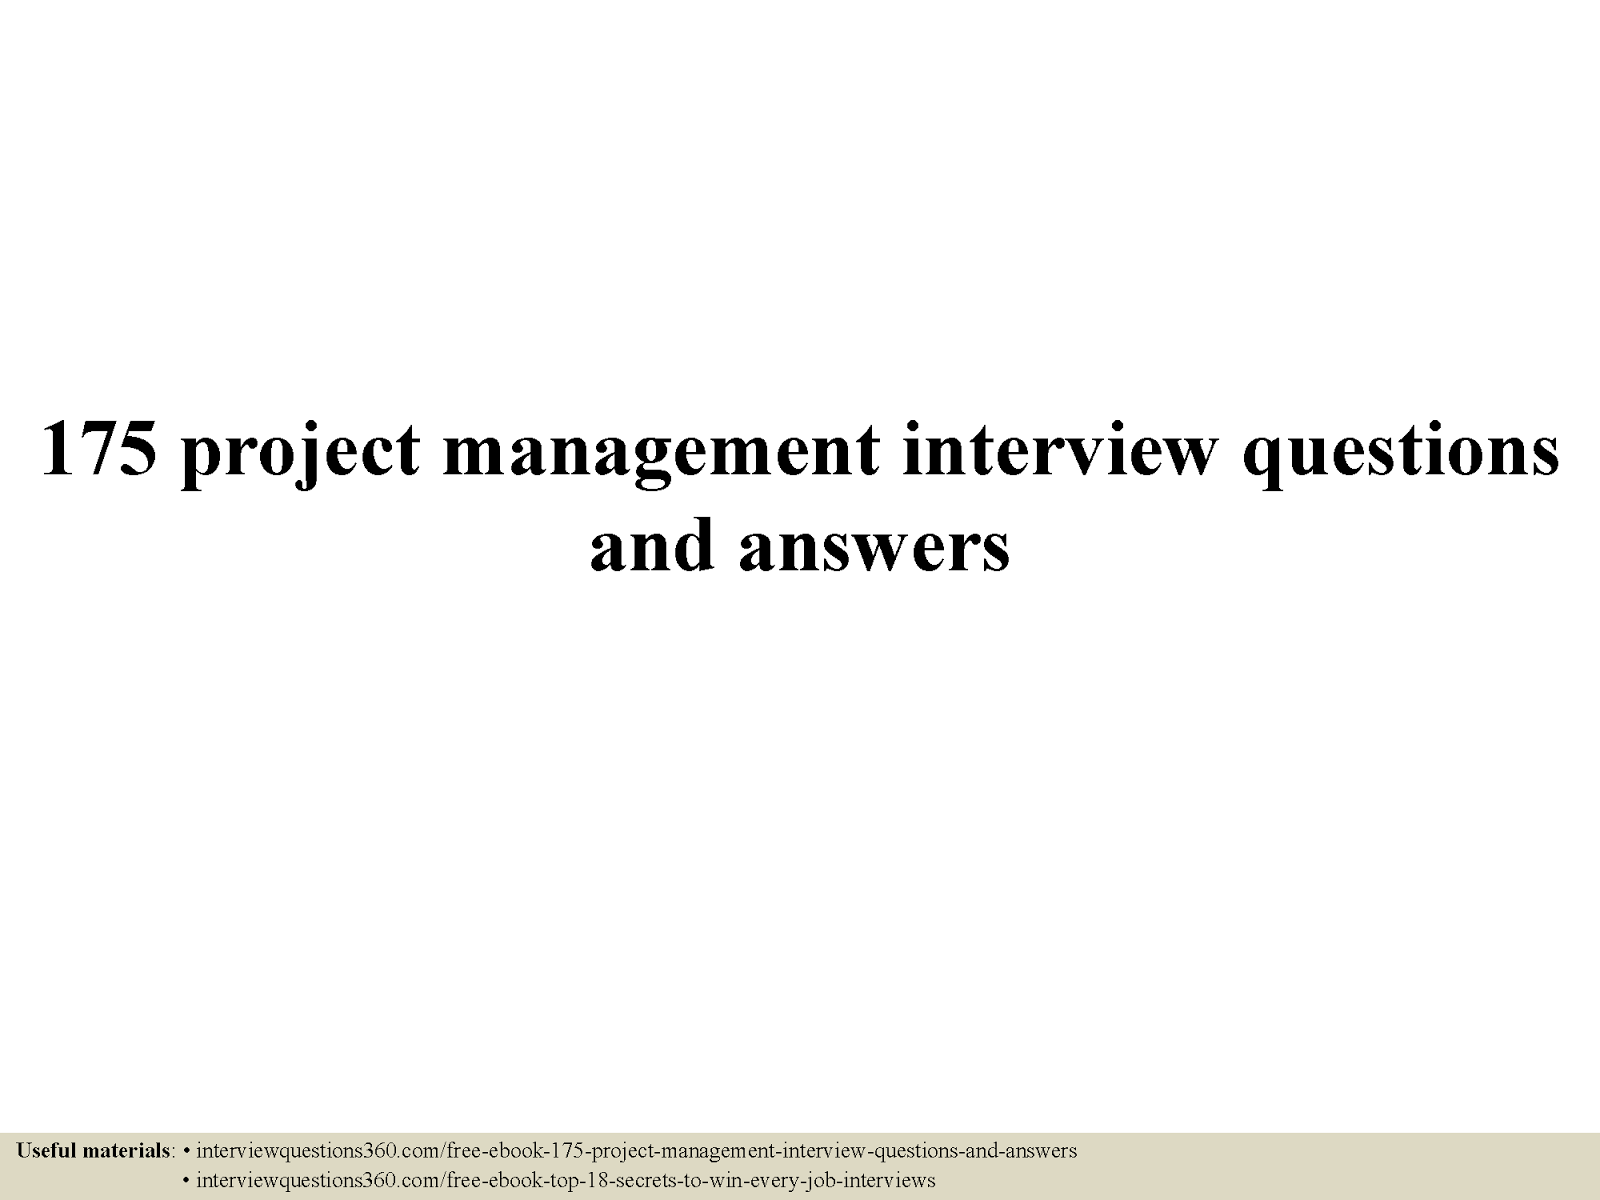 2016 project management interview questions and answers